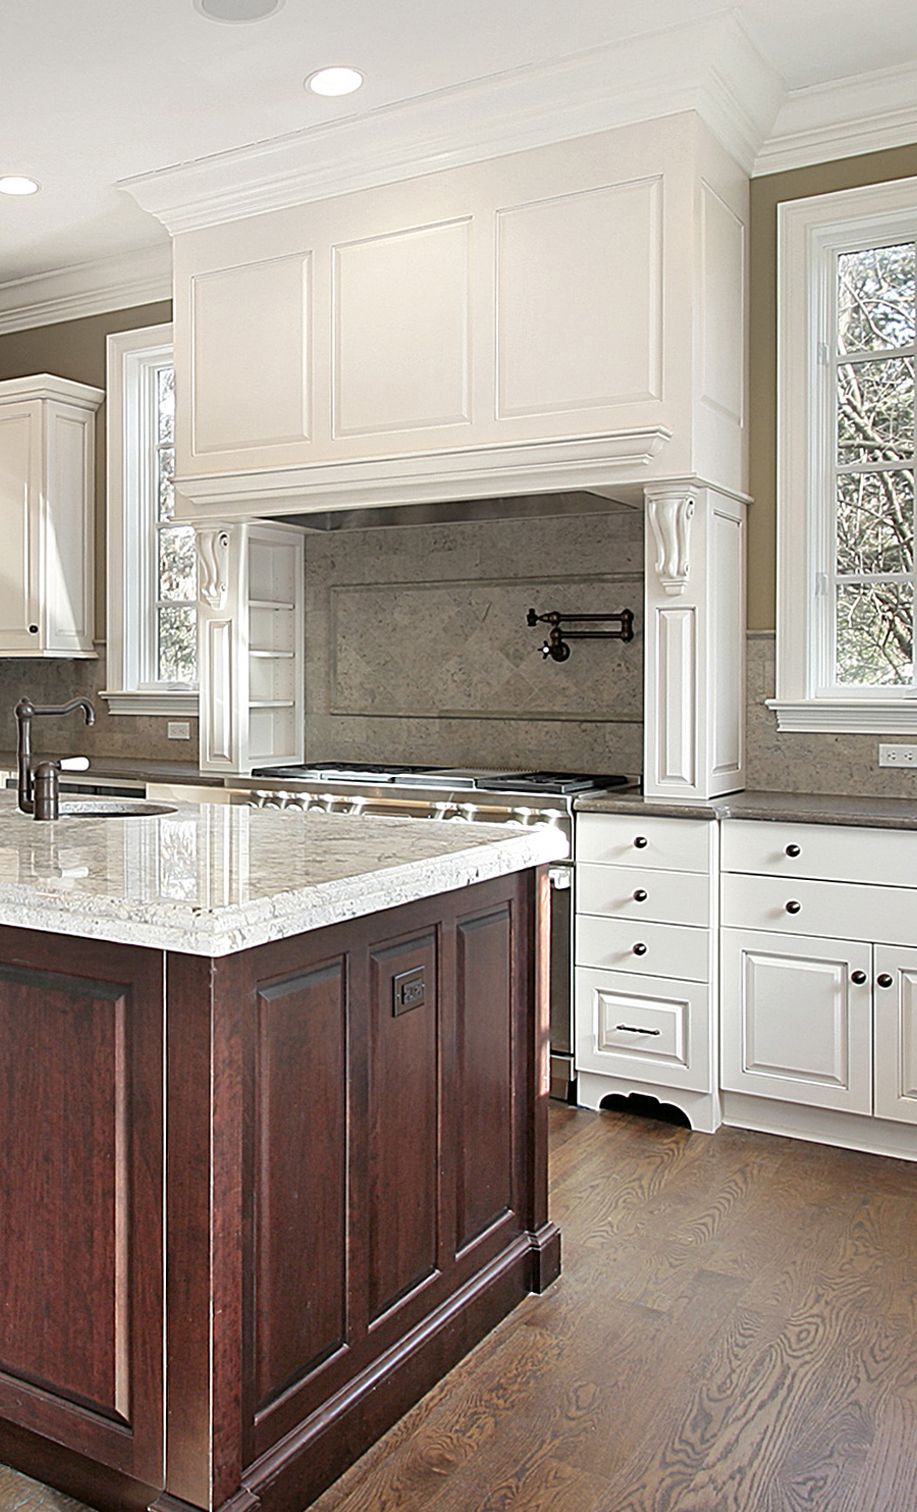 Best Kitchen Gallery: Cream Kitchen With Large Decorative Range Hood And Cherry Island of Specialty Kitchen Cabinets on rachelxblog.com